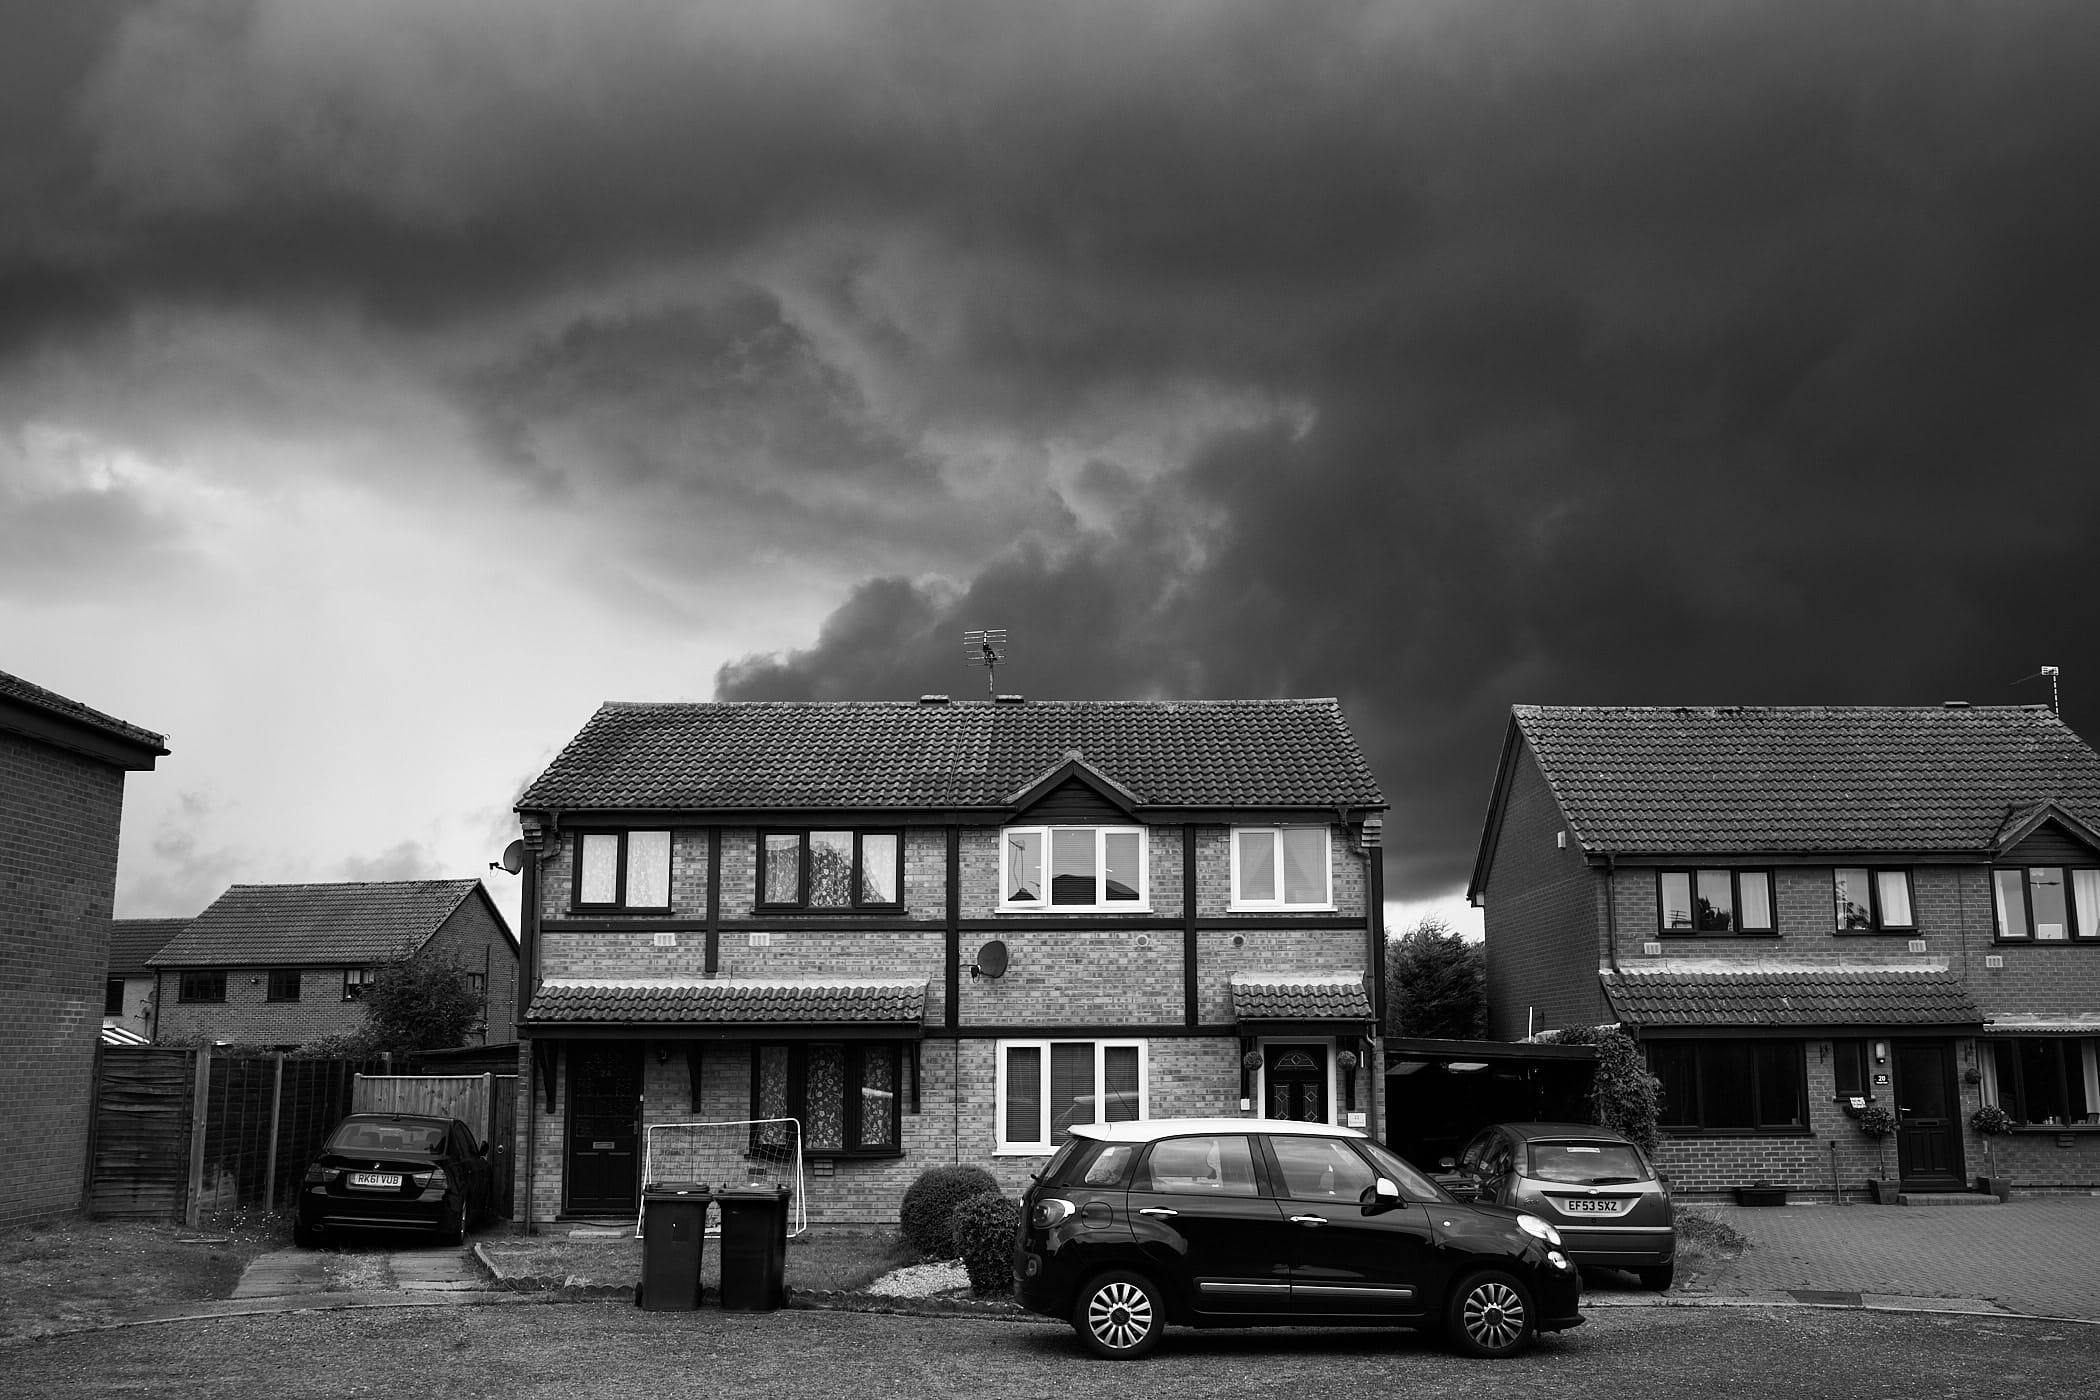 brewing storm behind houses